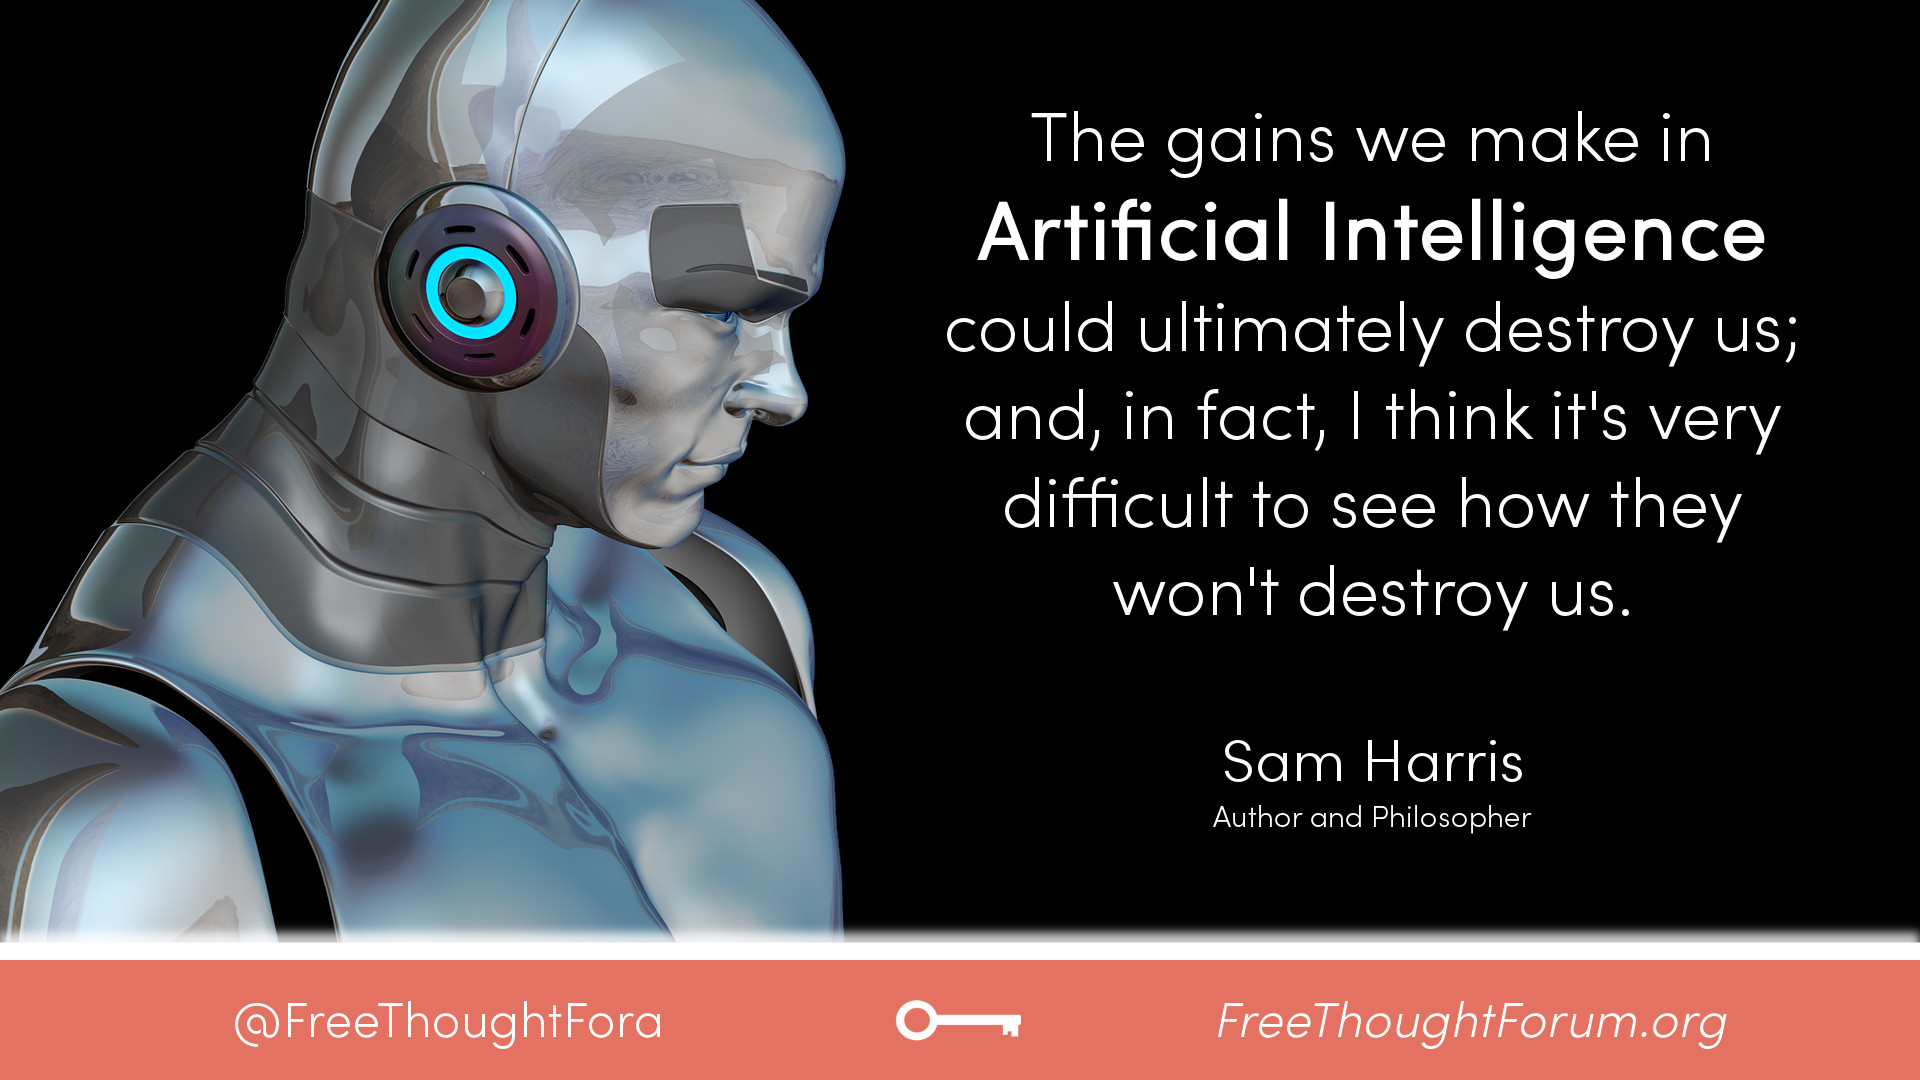 The gains we make in artificial intelligence could ultimately destroy us; and, in fact, I think it's very difficult to see how they won't destroy us.